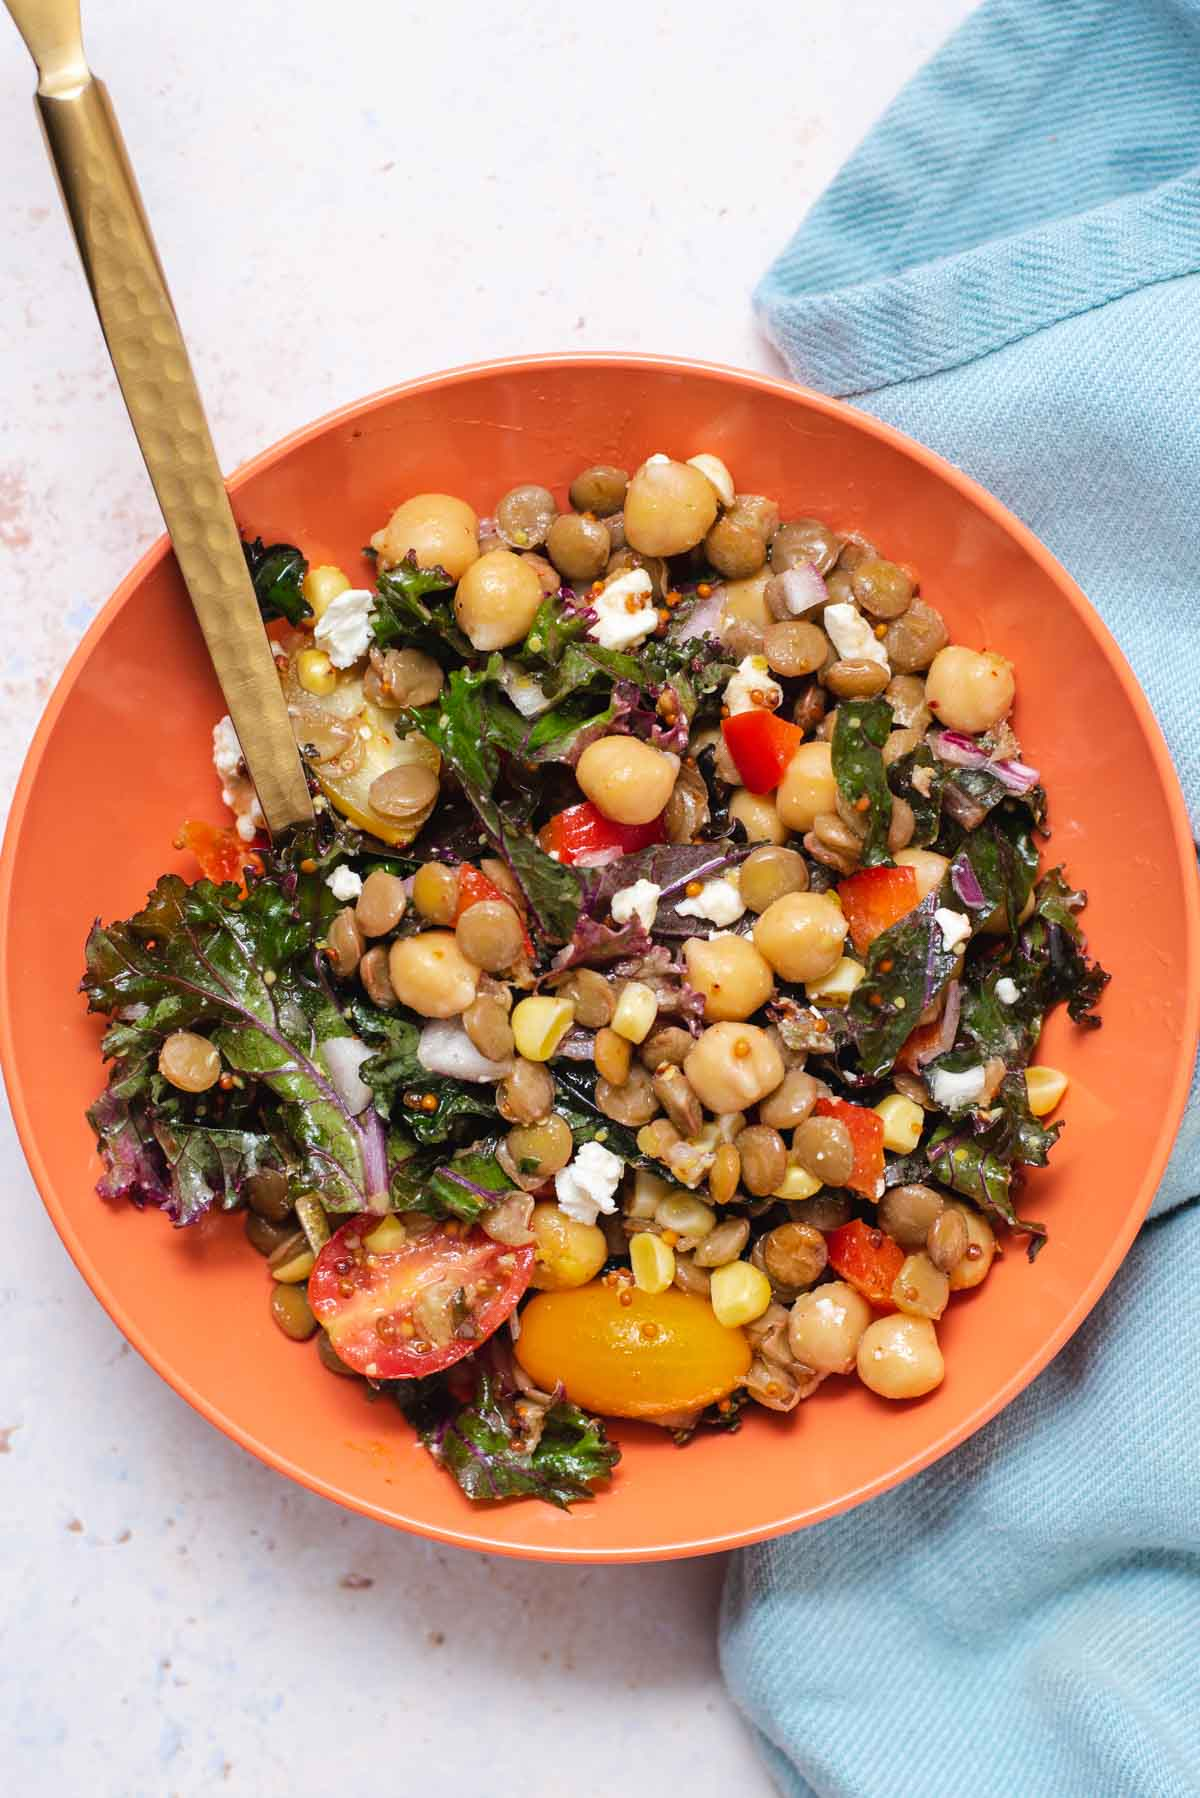 Pink bowl filled with lentil salad and a gold folk on a blue cloth